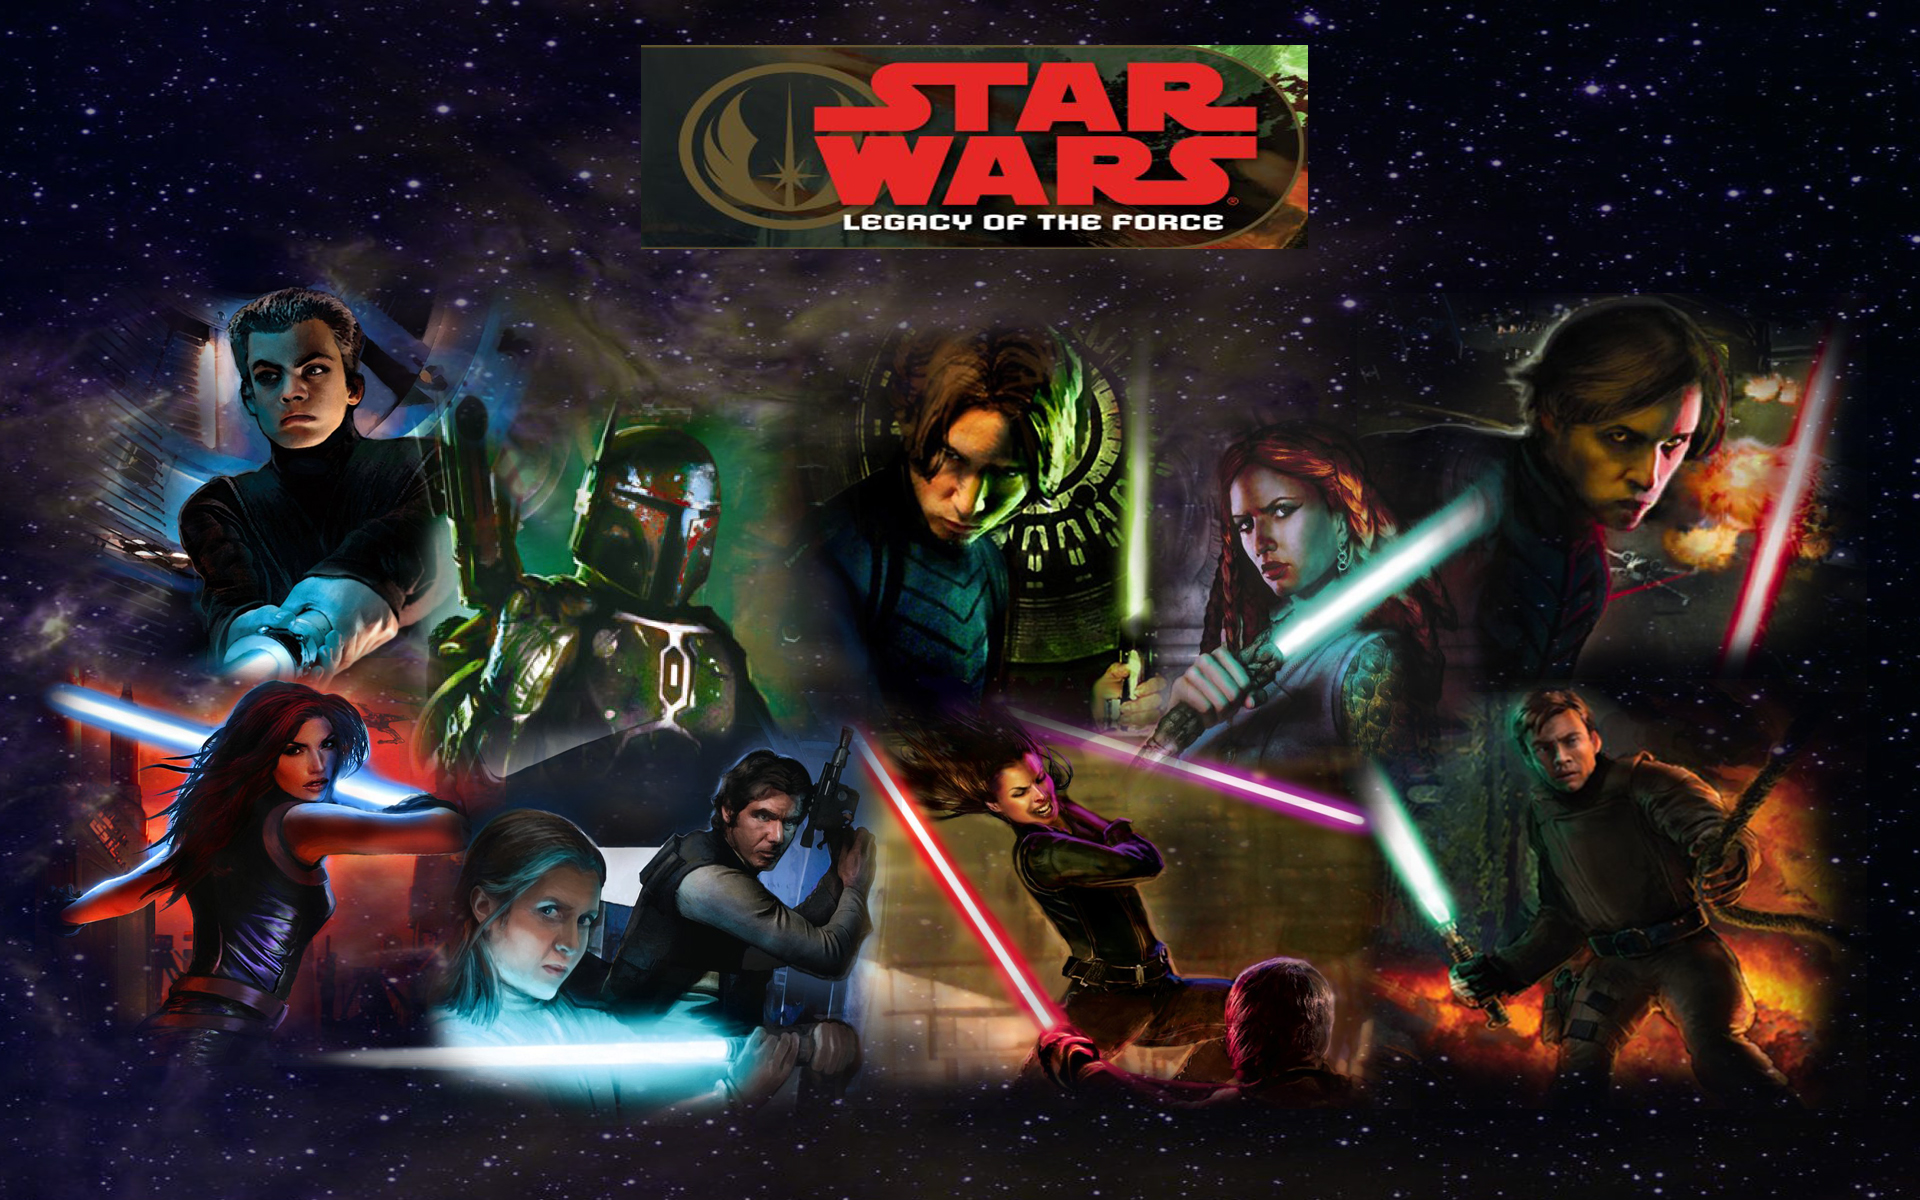 Star Wars Legacy Of The Force Hd Wallpaper Background Image 1920x1200 Id 251714 Wallpaper Abyss